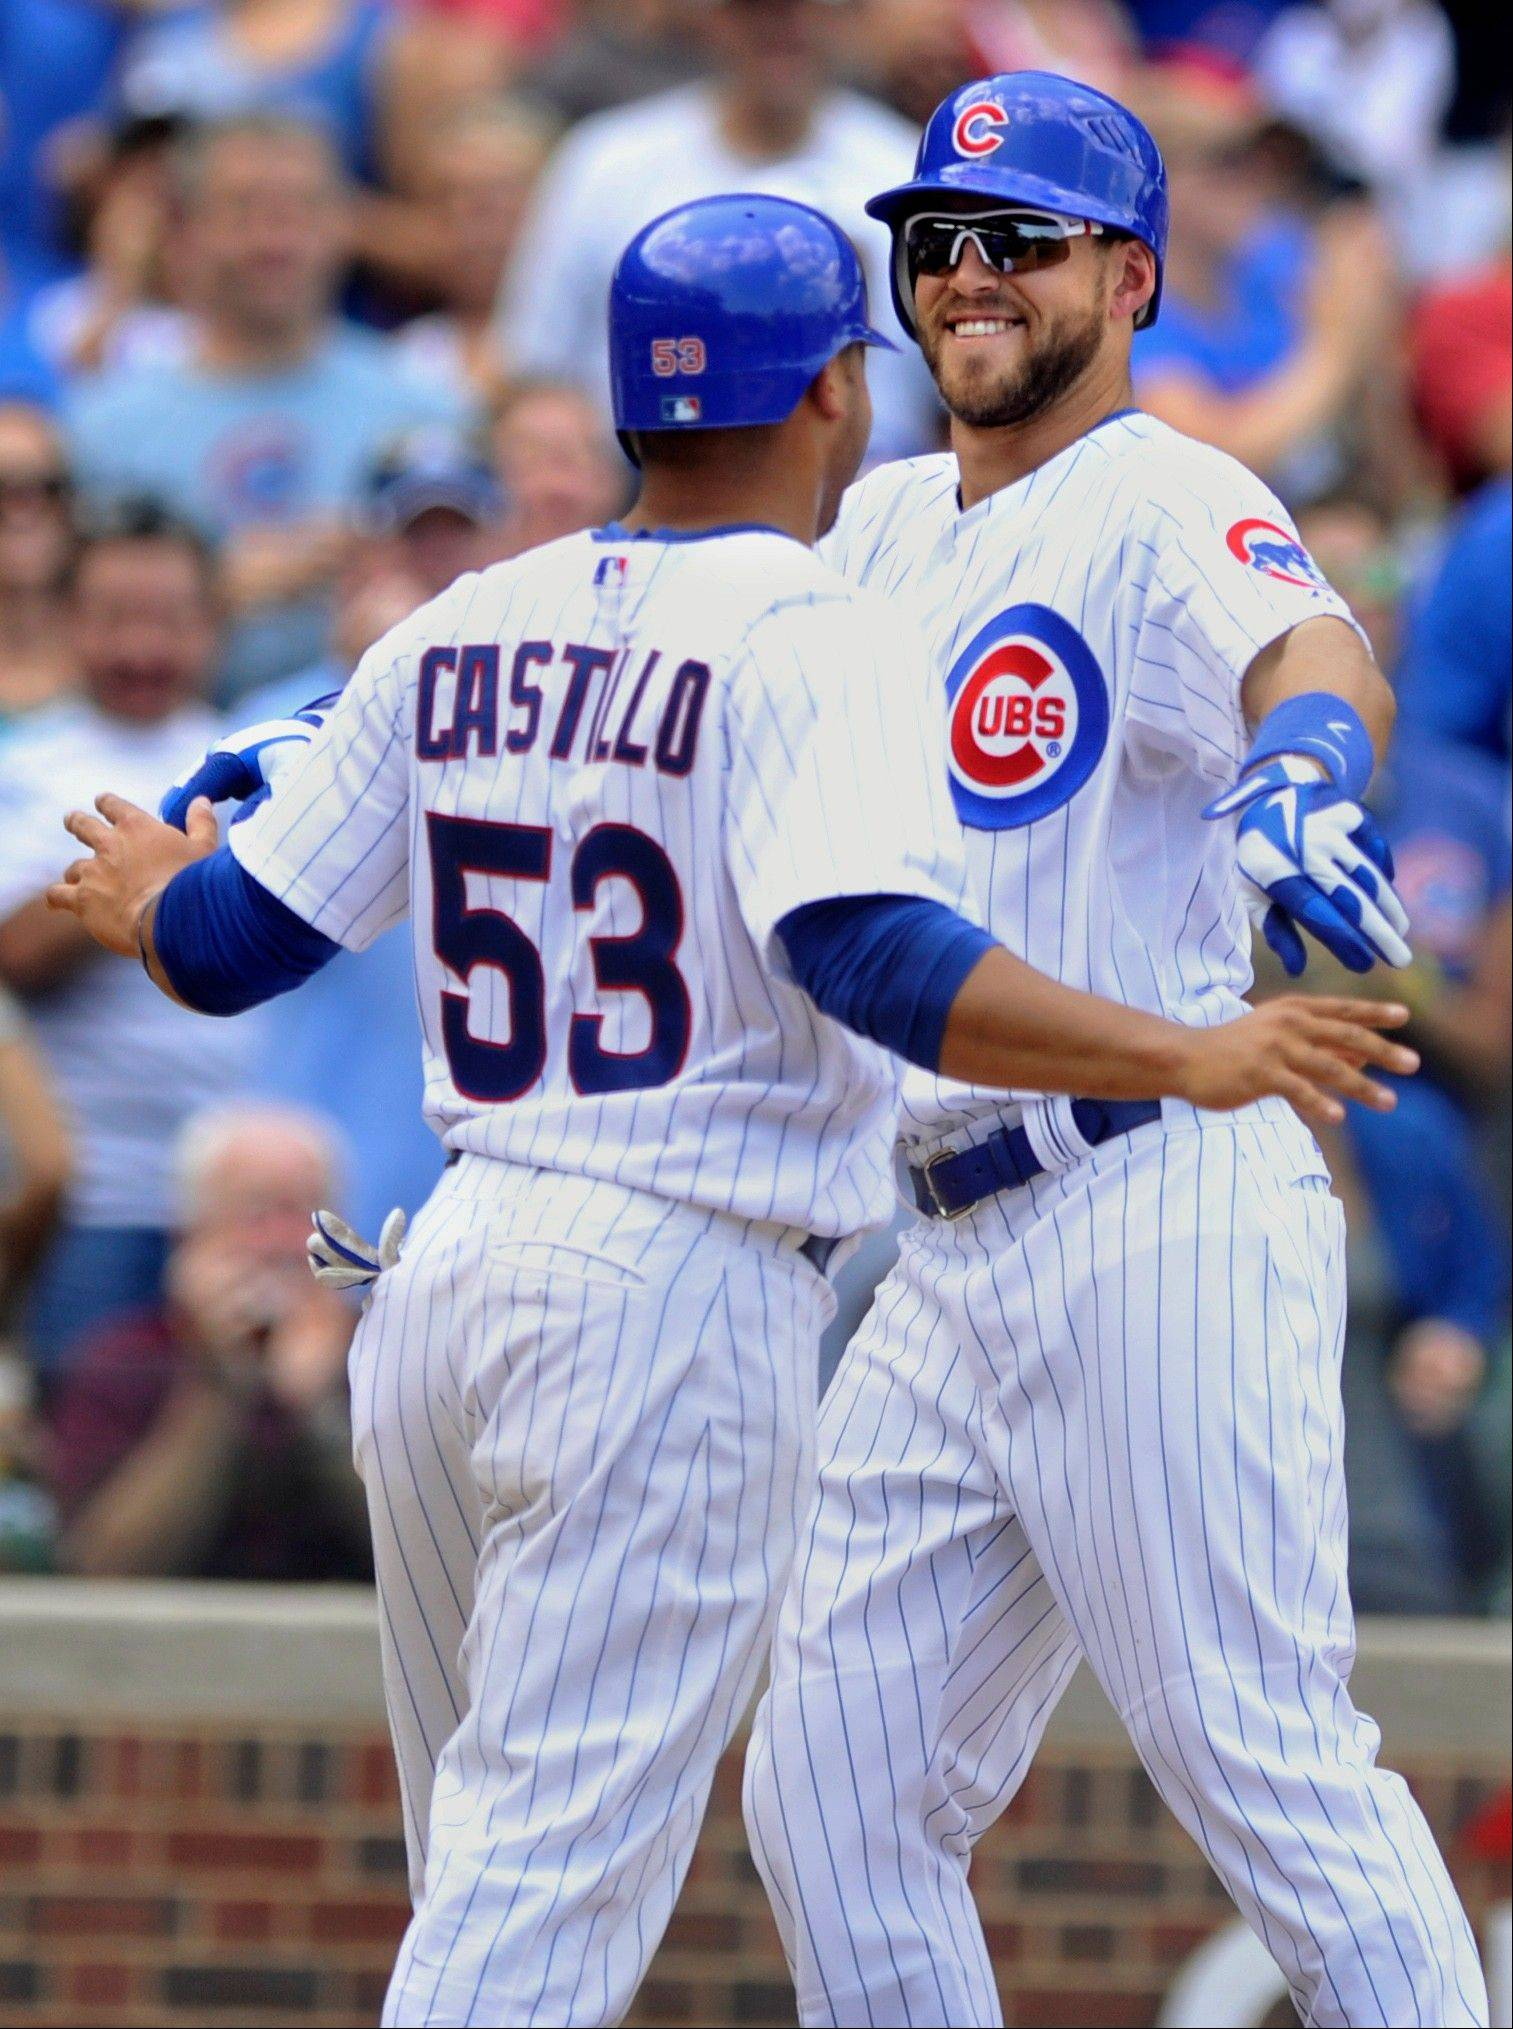 The Cubs' Brett Jackson right, celebrates with Welington Castillo after hitting a 2-run homer against the Rockies in the fourth inning Saturday. Jackson homered for the second straight game and had his third multihit game.